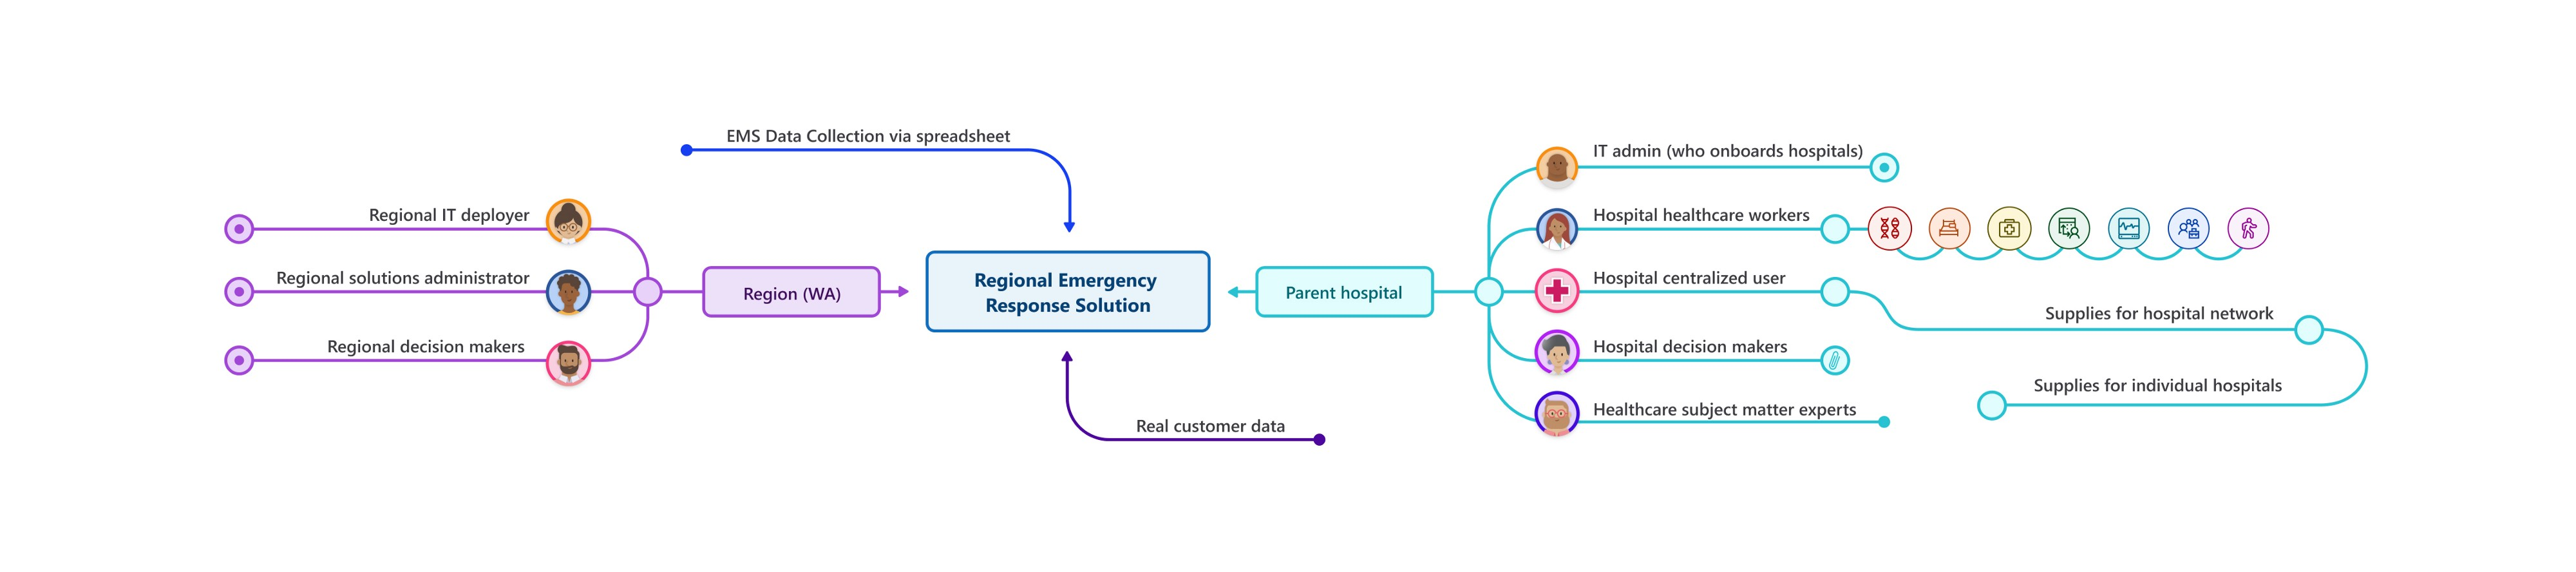 "The ""Regional Emergency Response Solution"" in the middle; Hospital info, regional info, customer data, EMS data flow into it."